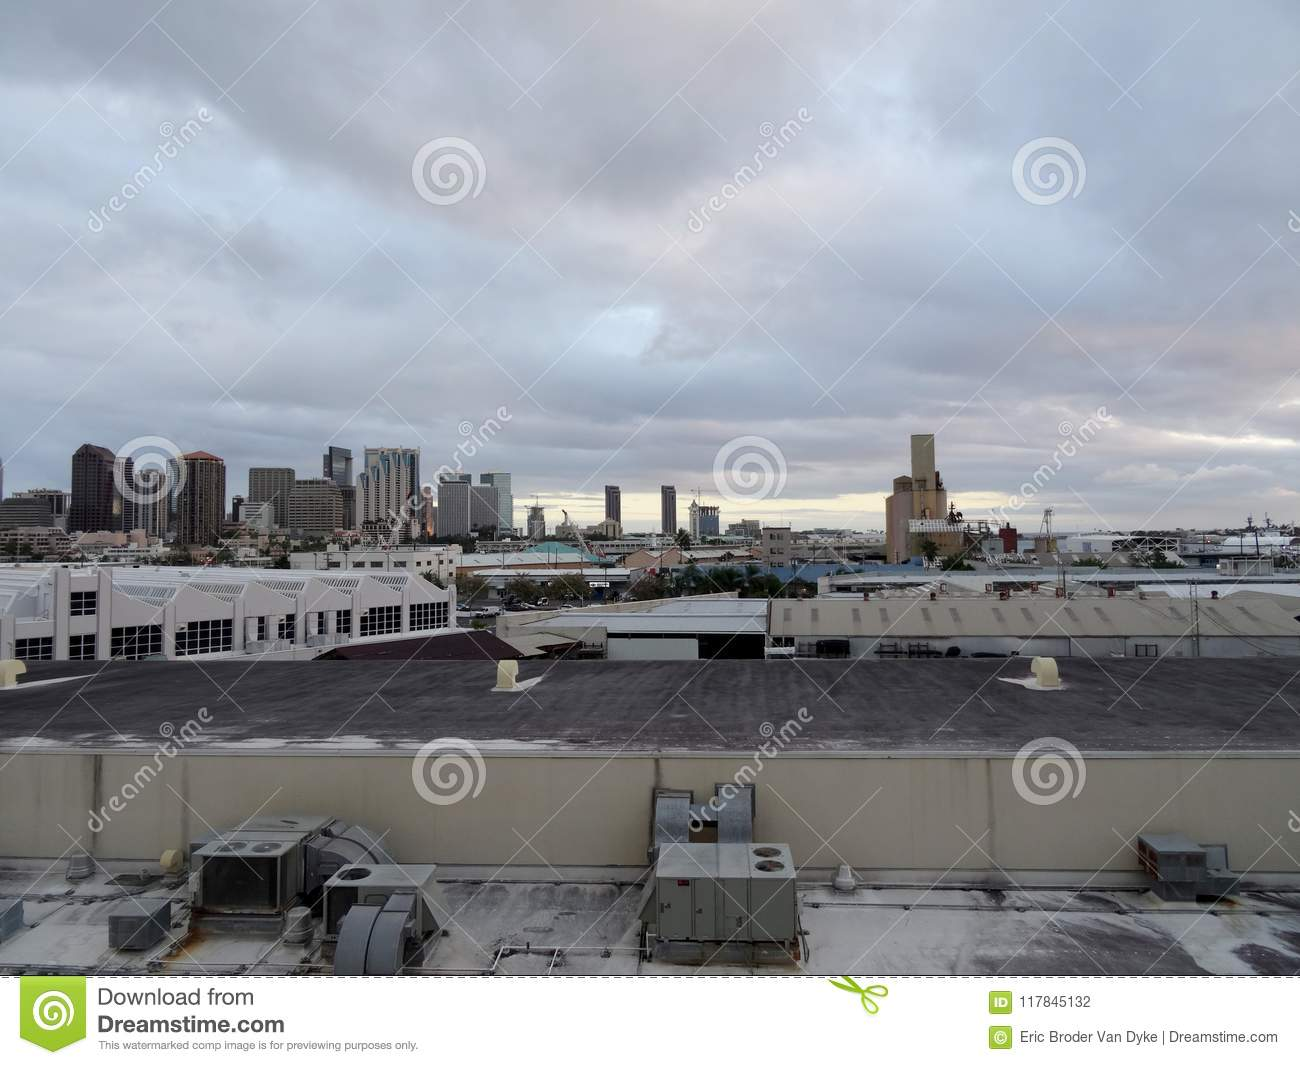 Port Of Honolulu >> Aerial View Of The Honolulu Port And Downtown Skyline Stock Photo